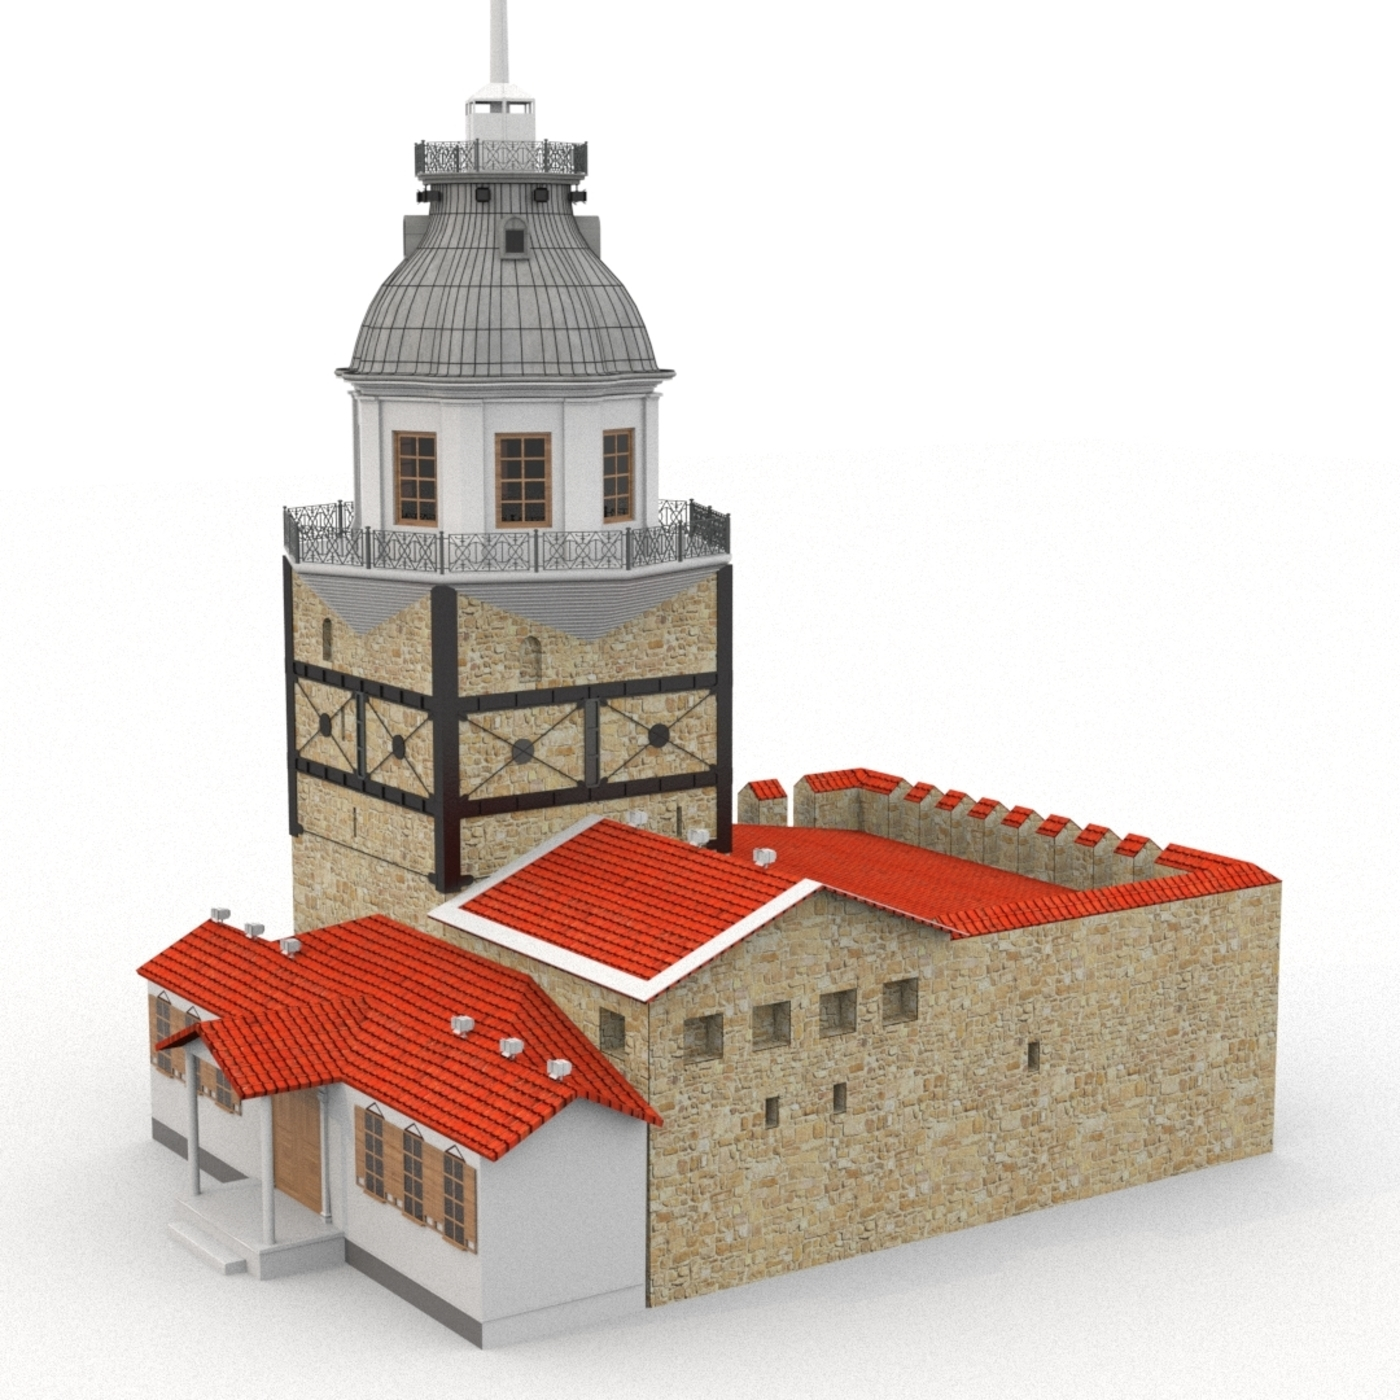 Maiden is Tower